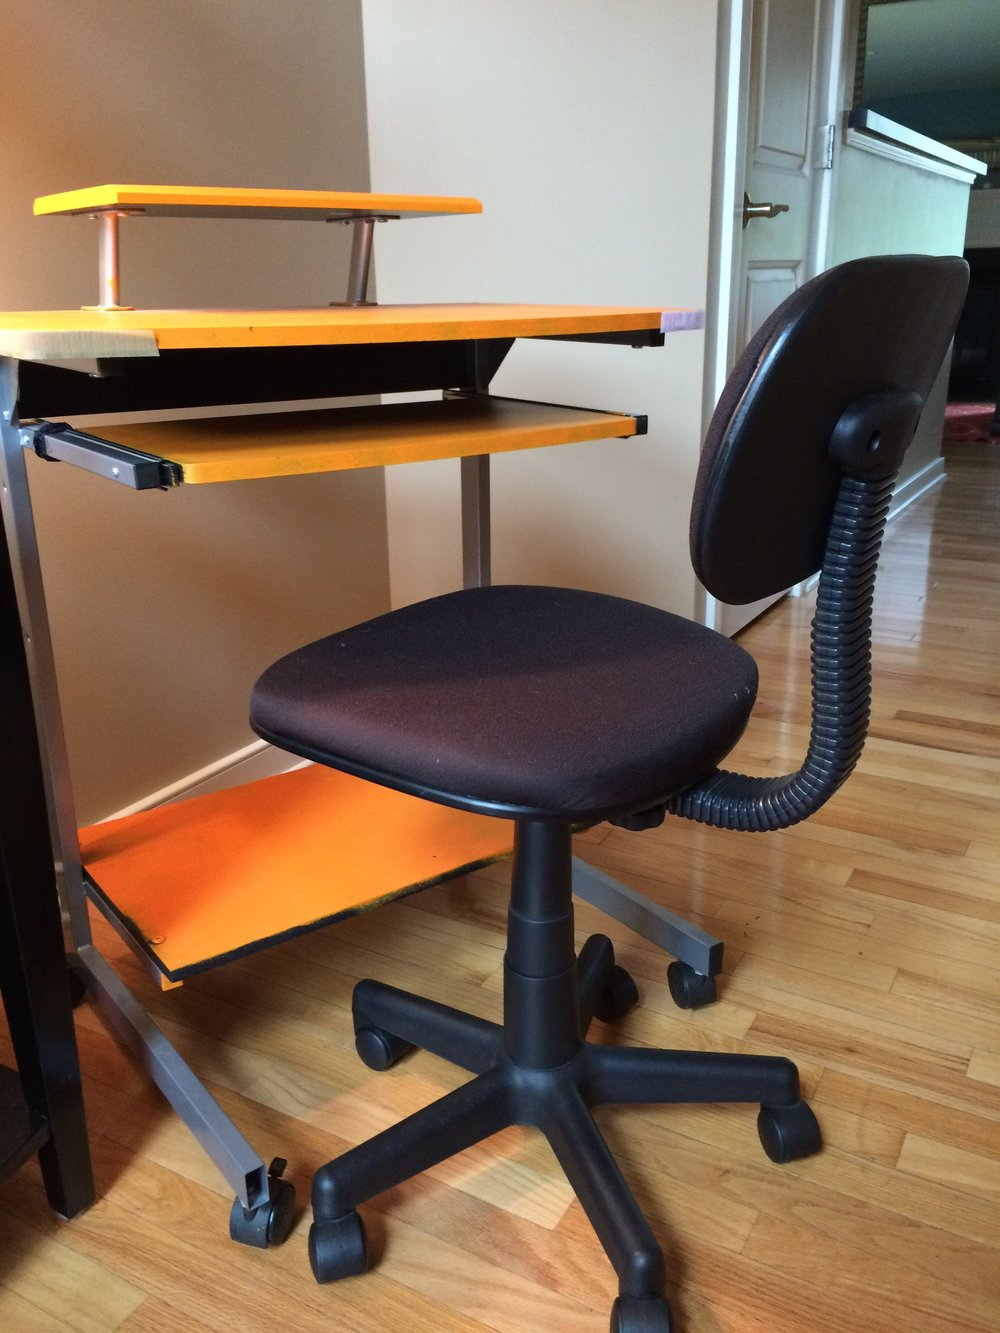 Saying goodbye to my chair & desk